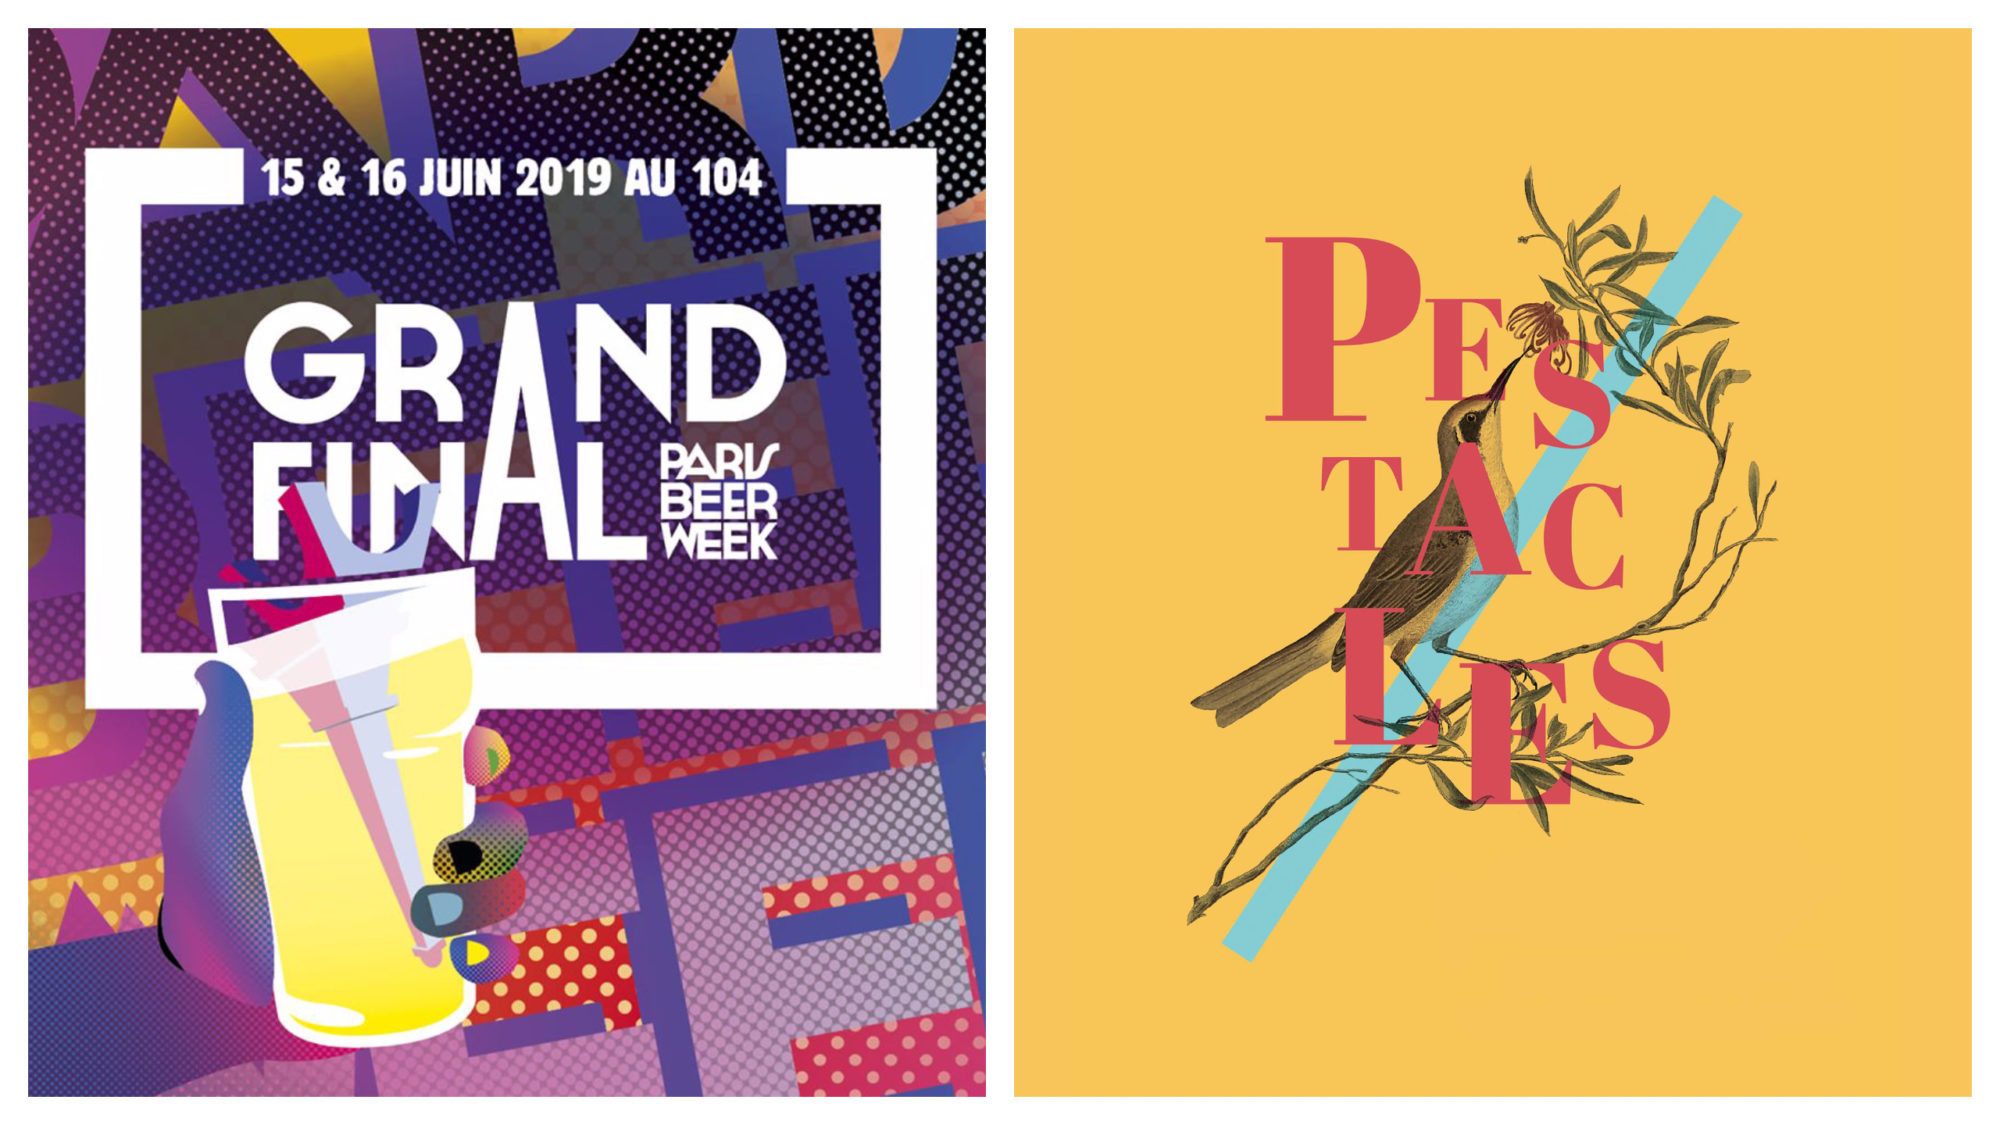 In Paris in June, events taking place include the Paris Beer Week (left) and the Pestacles theatre festival (right).